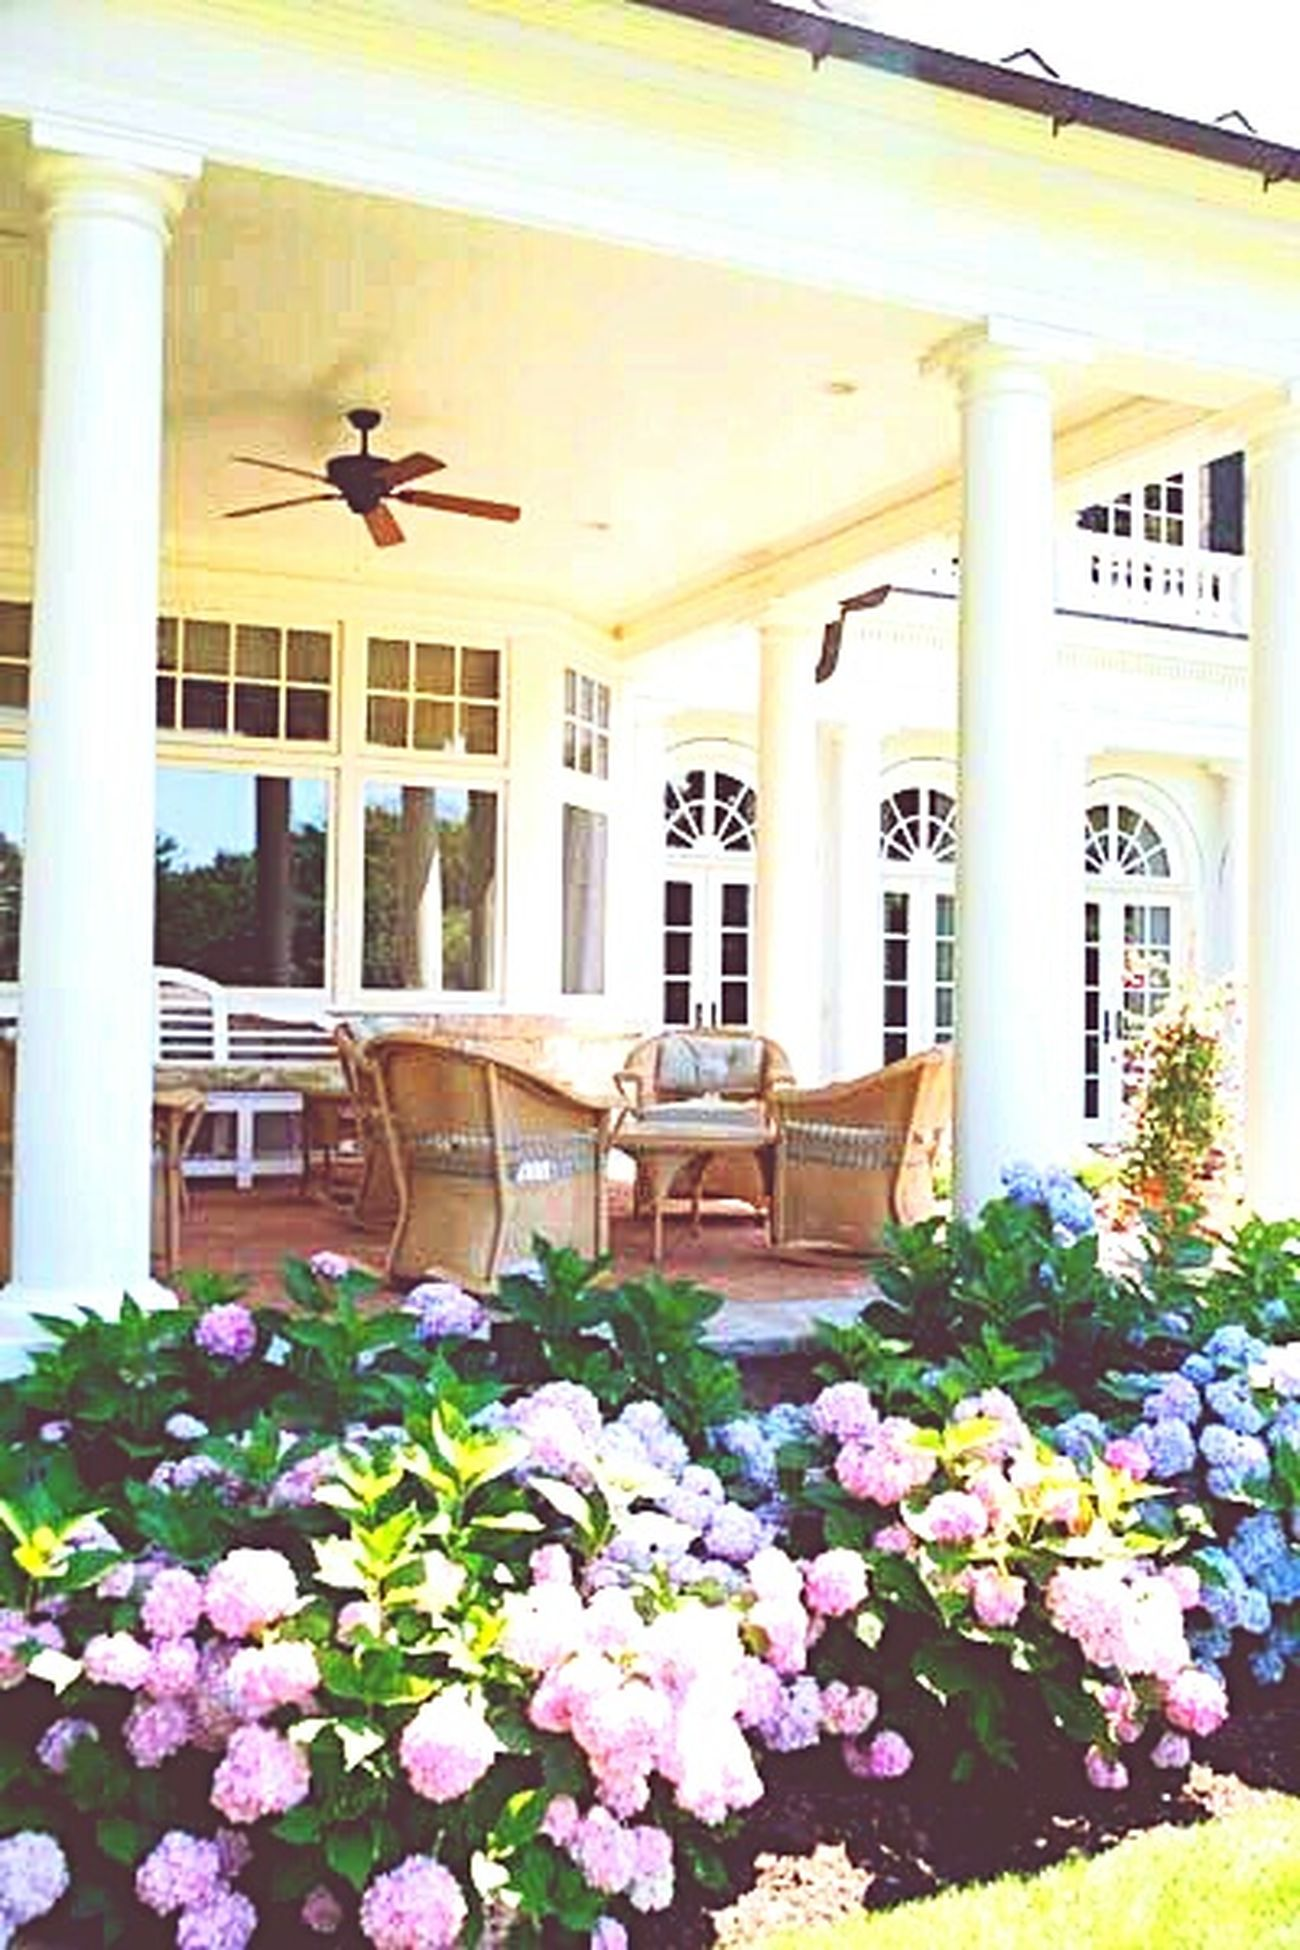 Nature Pink Color Purple No People Vintage Vintage Photo Outdoors Day Flowers,Plants & Garden Flowers Architecture Houses Houses And Windows Beauty In Nature Beautiful Luxurylife Luxury Beautiful House Porch Sitting Porch Porchedesign Porch Railing